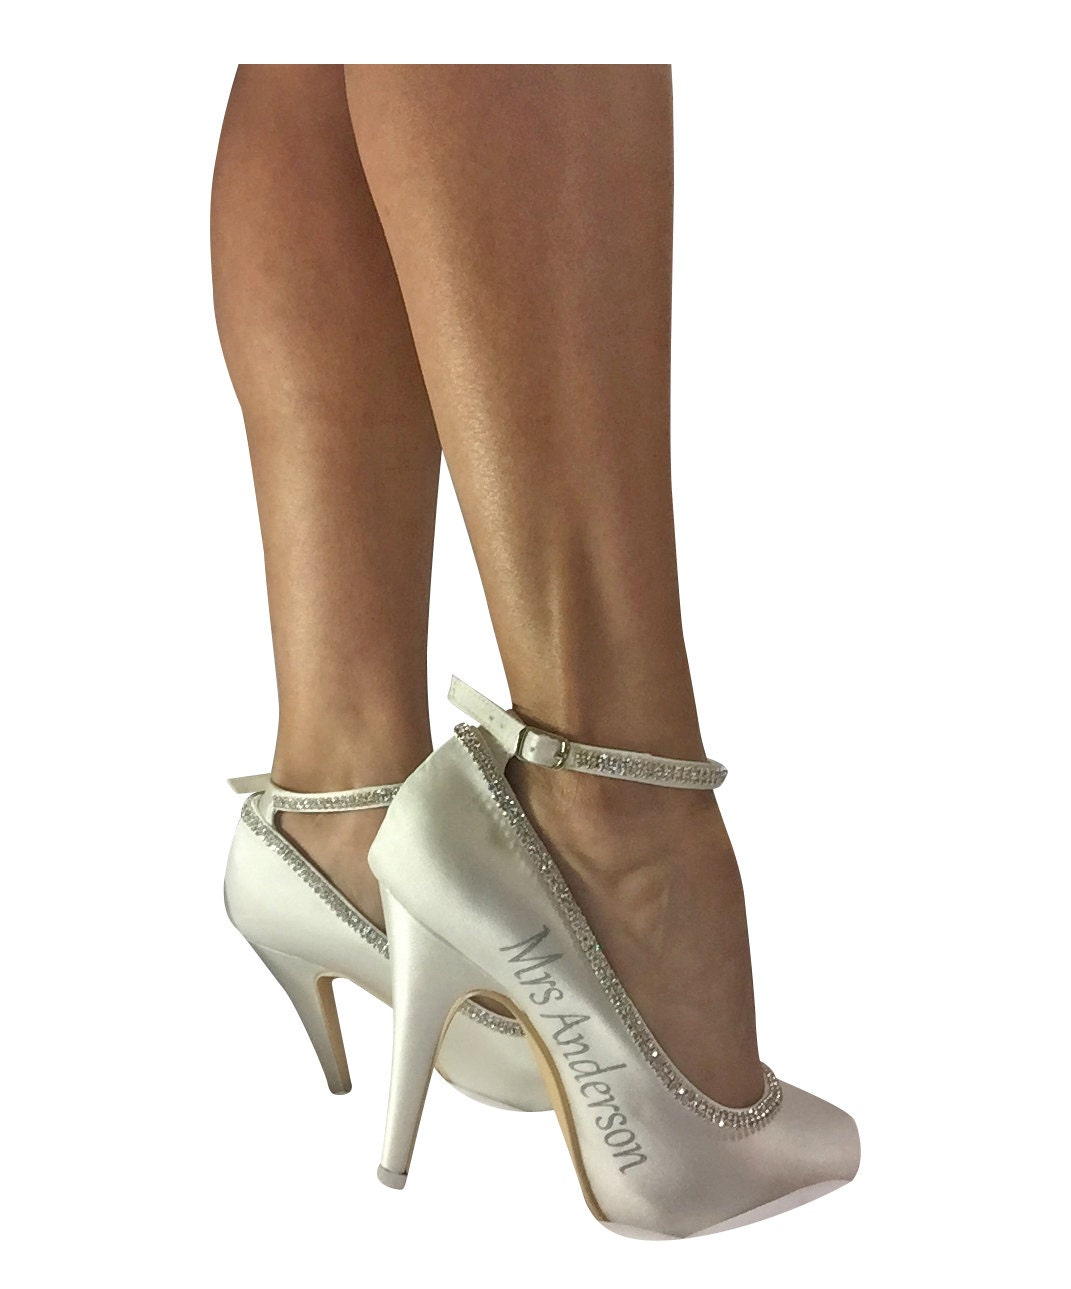 Rhinestone, Ivory Bridal and Silver Diamonte Strap Bridal Ivory High Heels, Mrs new last name and wedding date ab114a